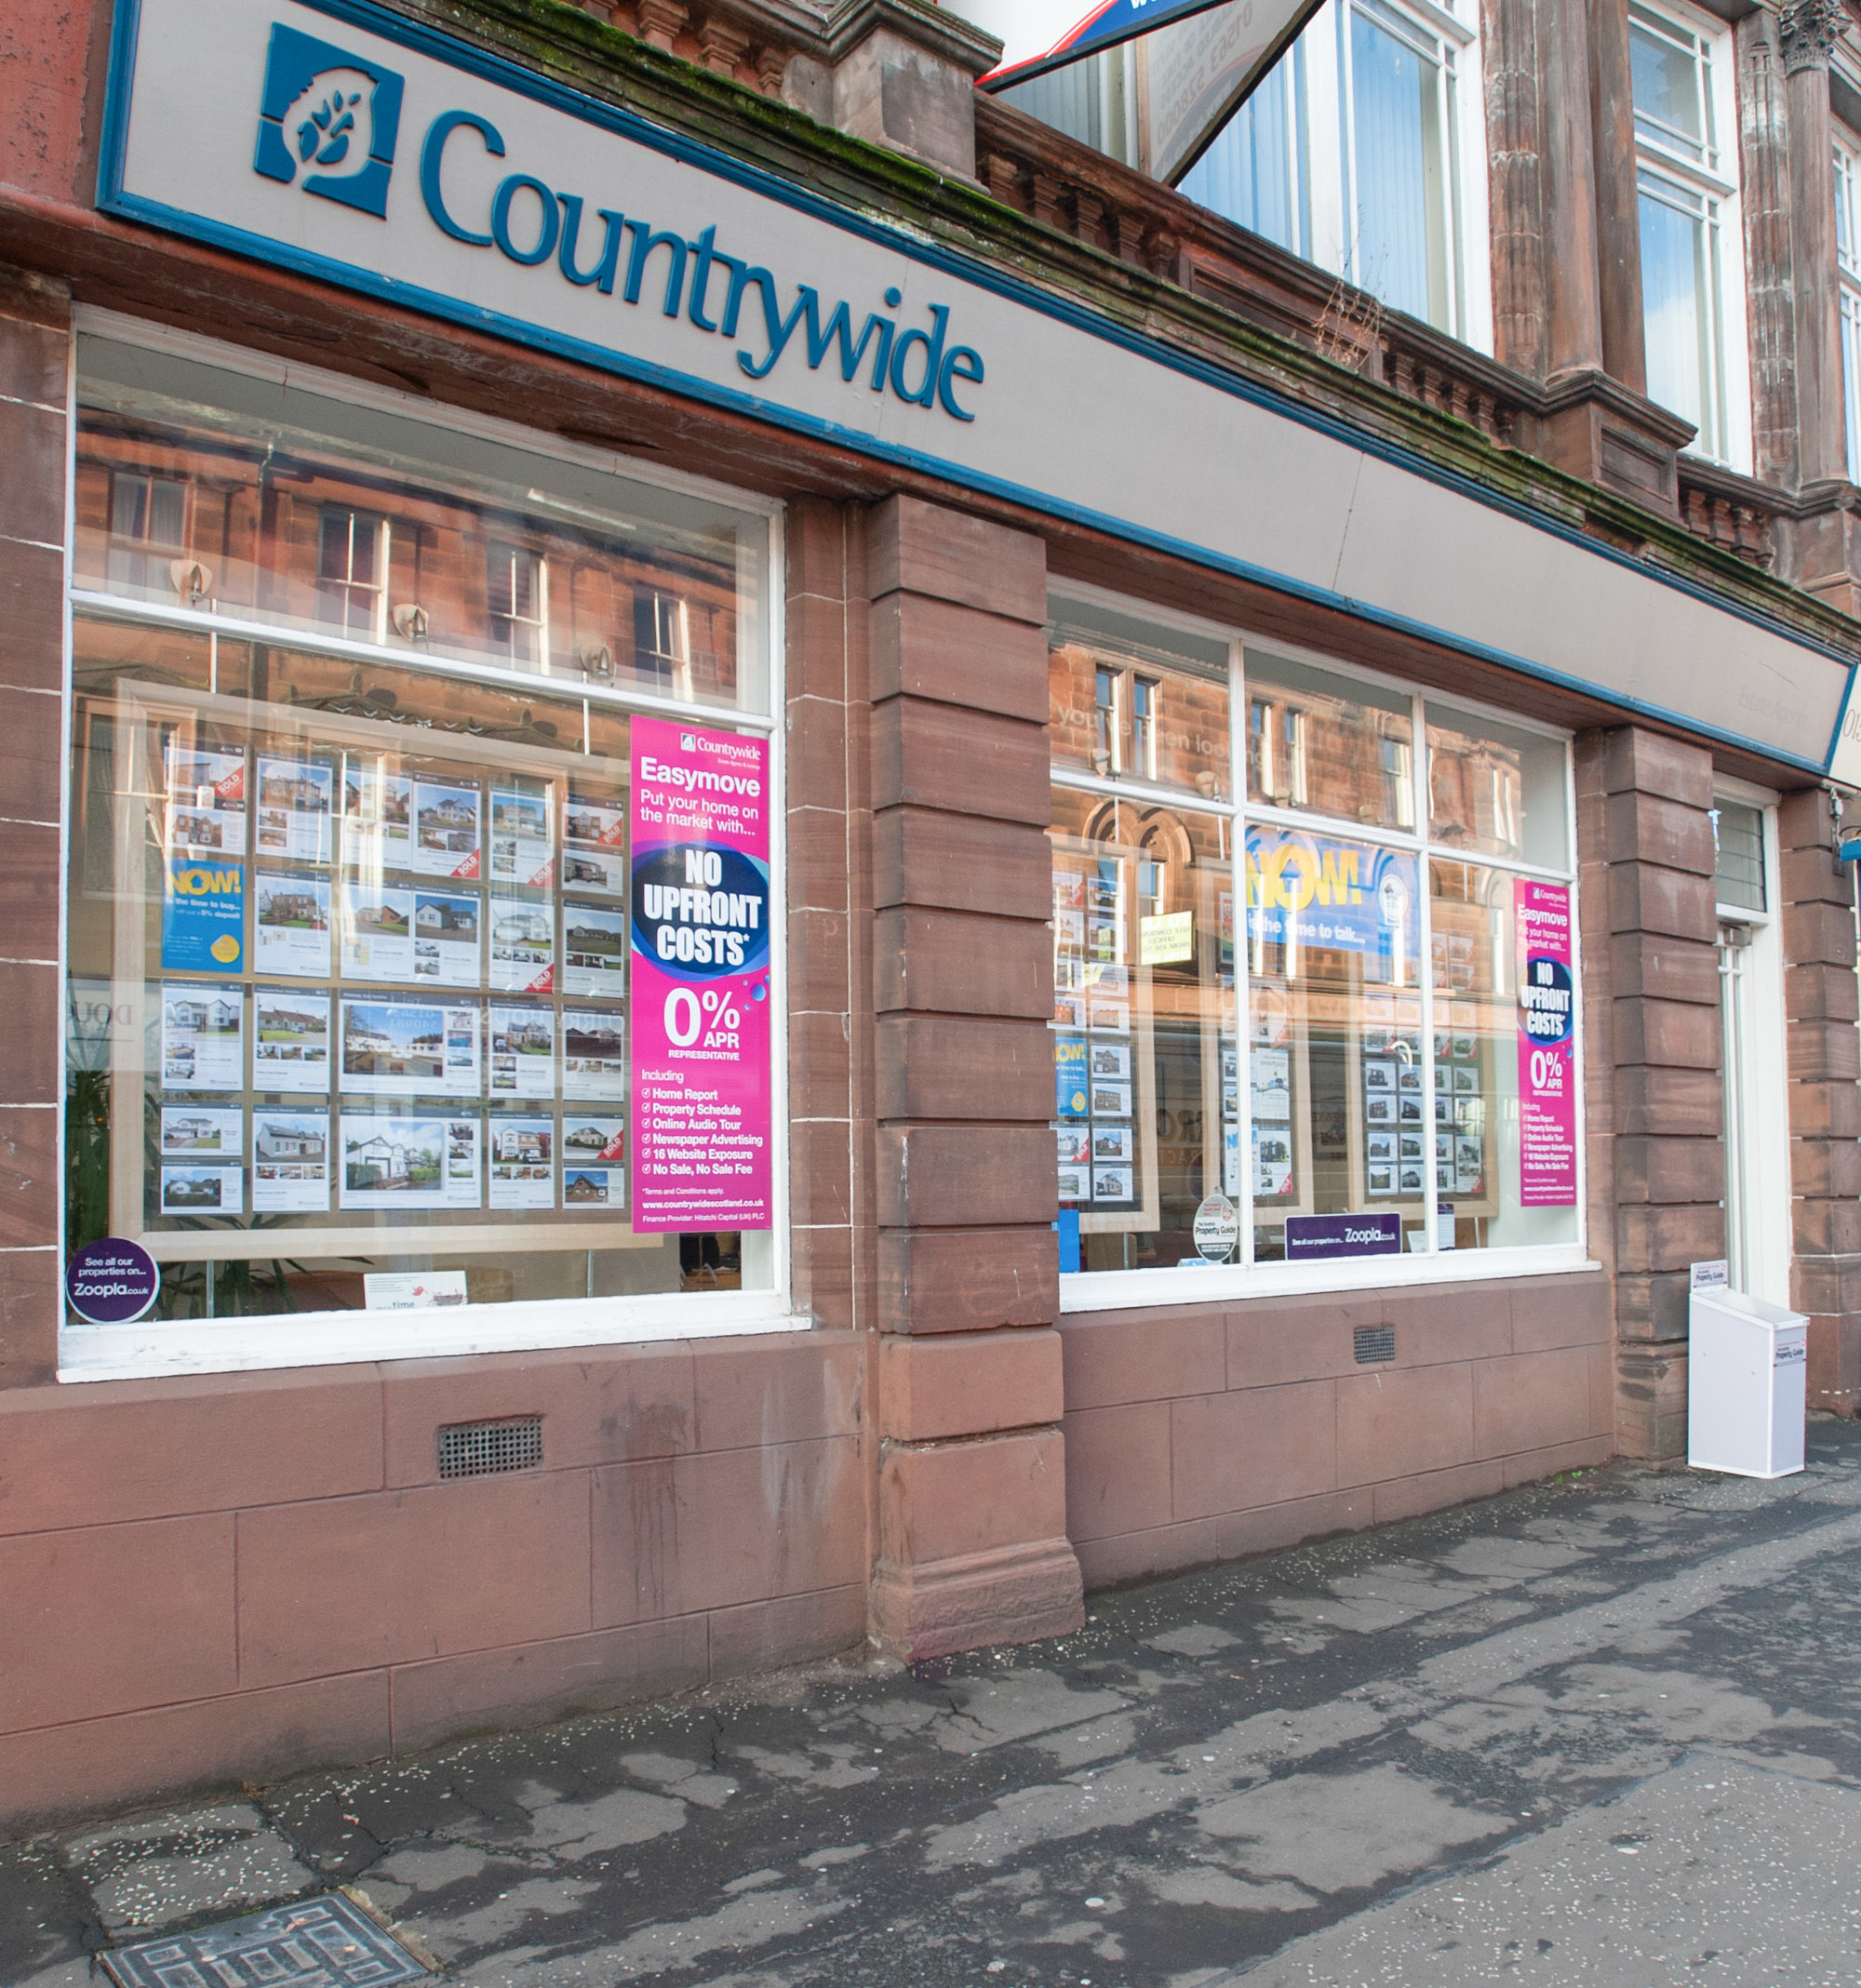 Countrywide Scotland - CLOSED